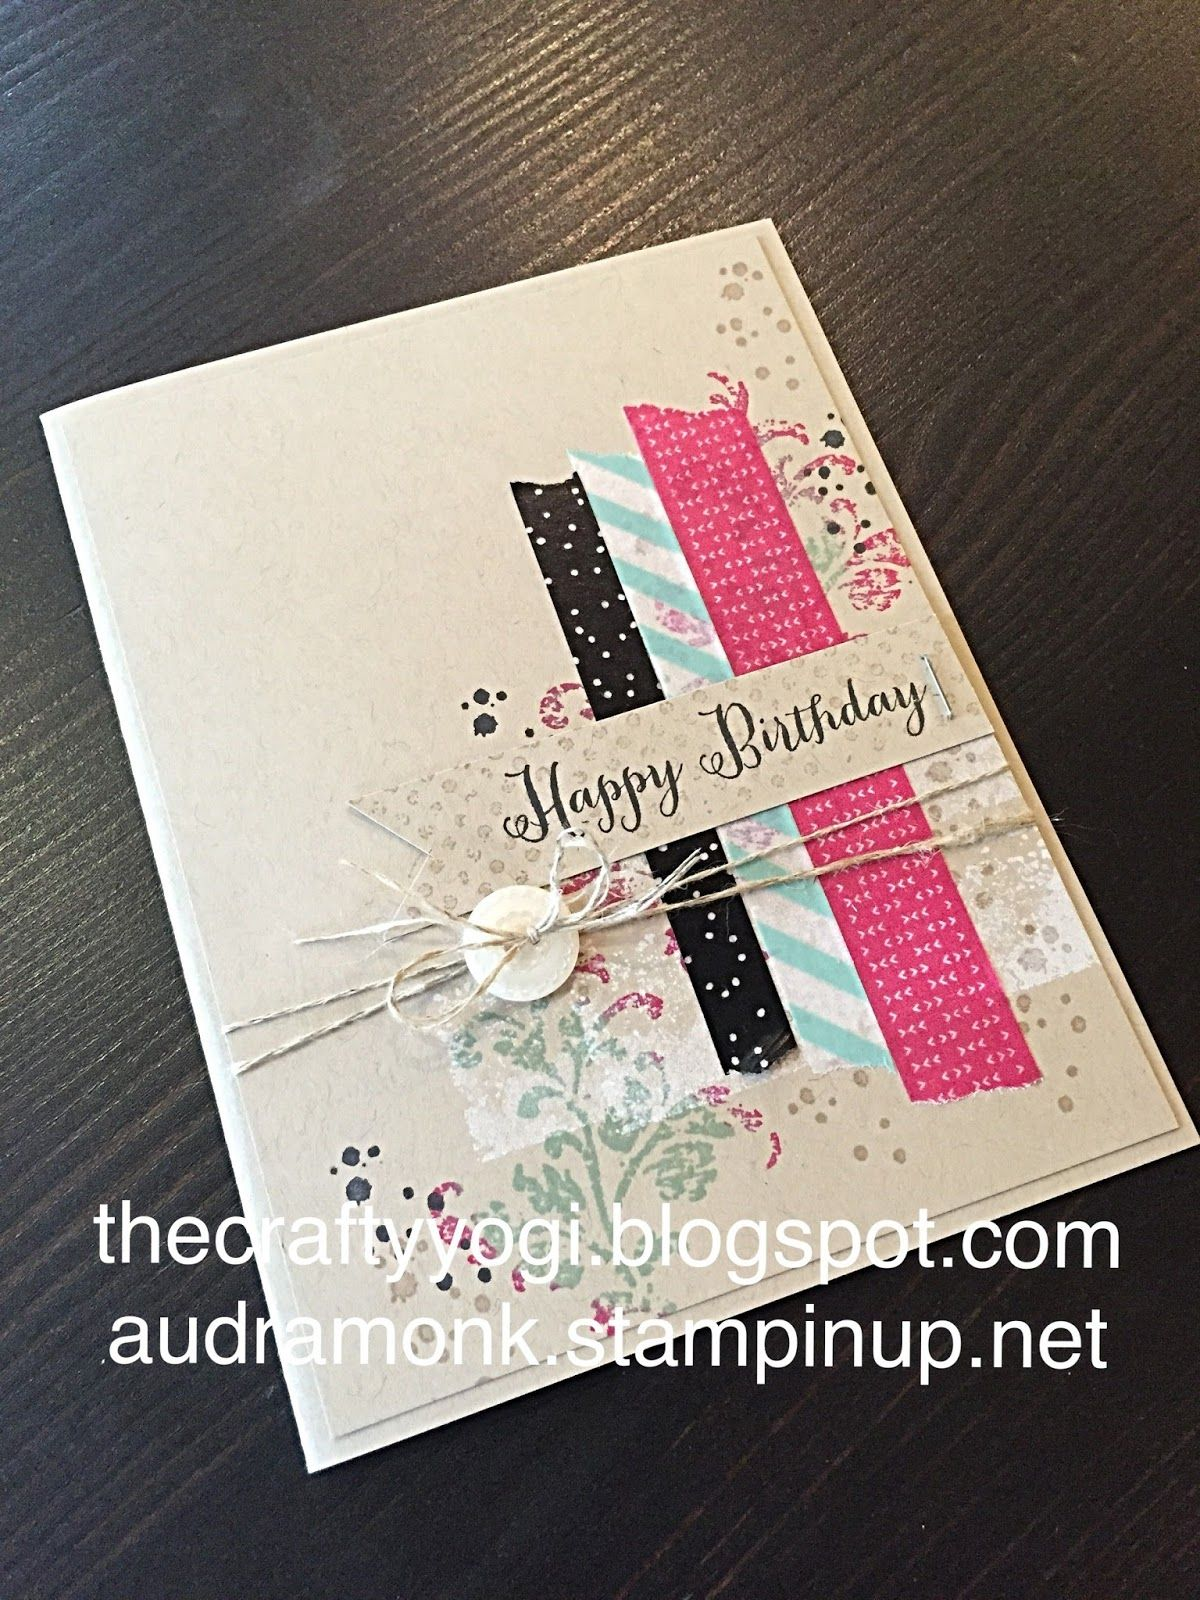 Pin on Stampin'up